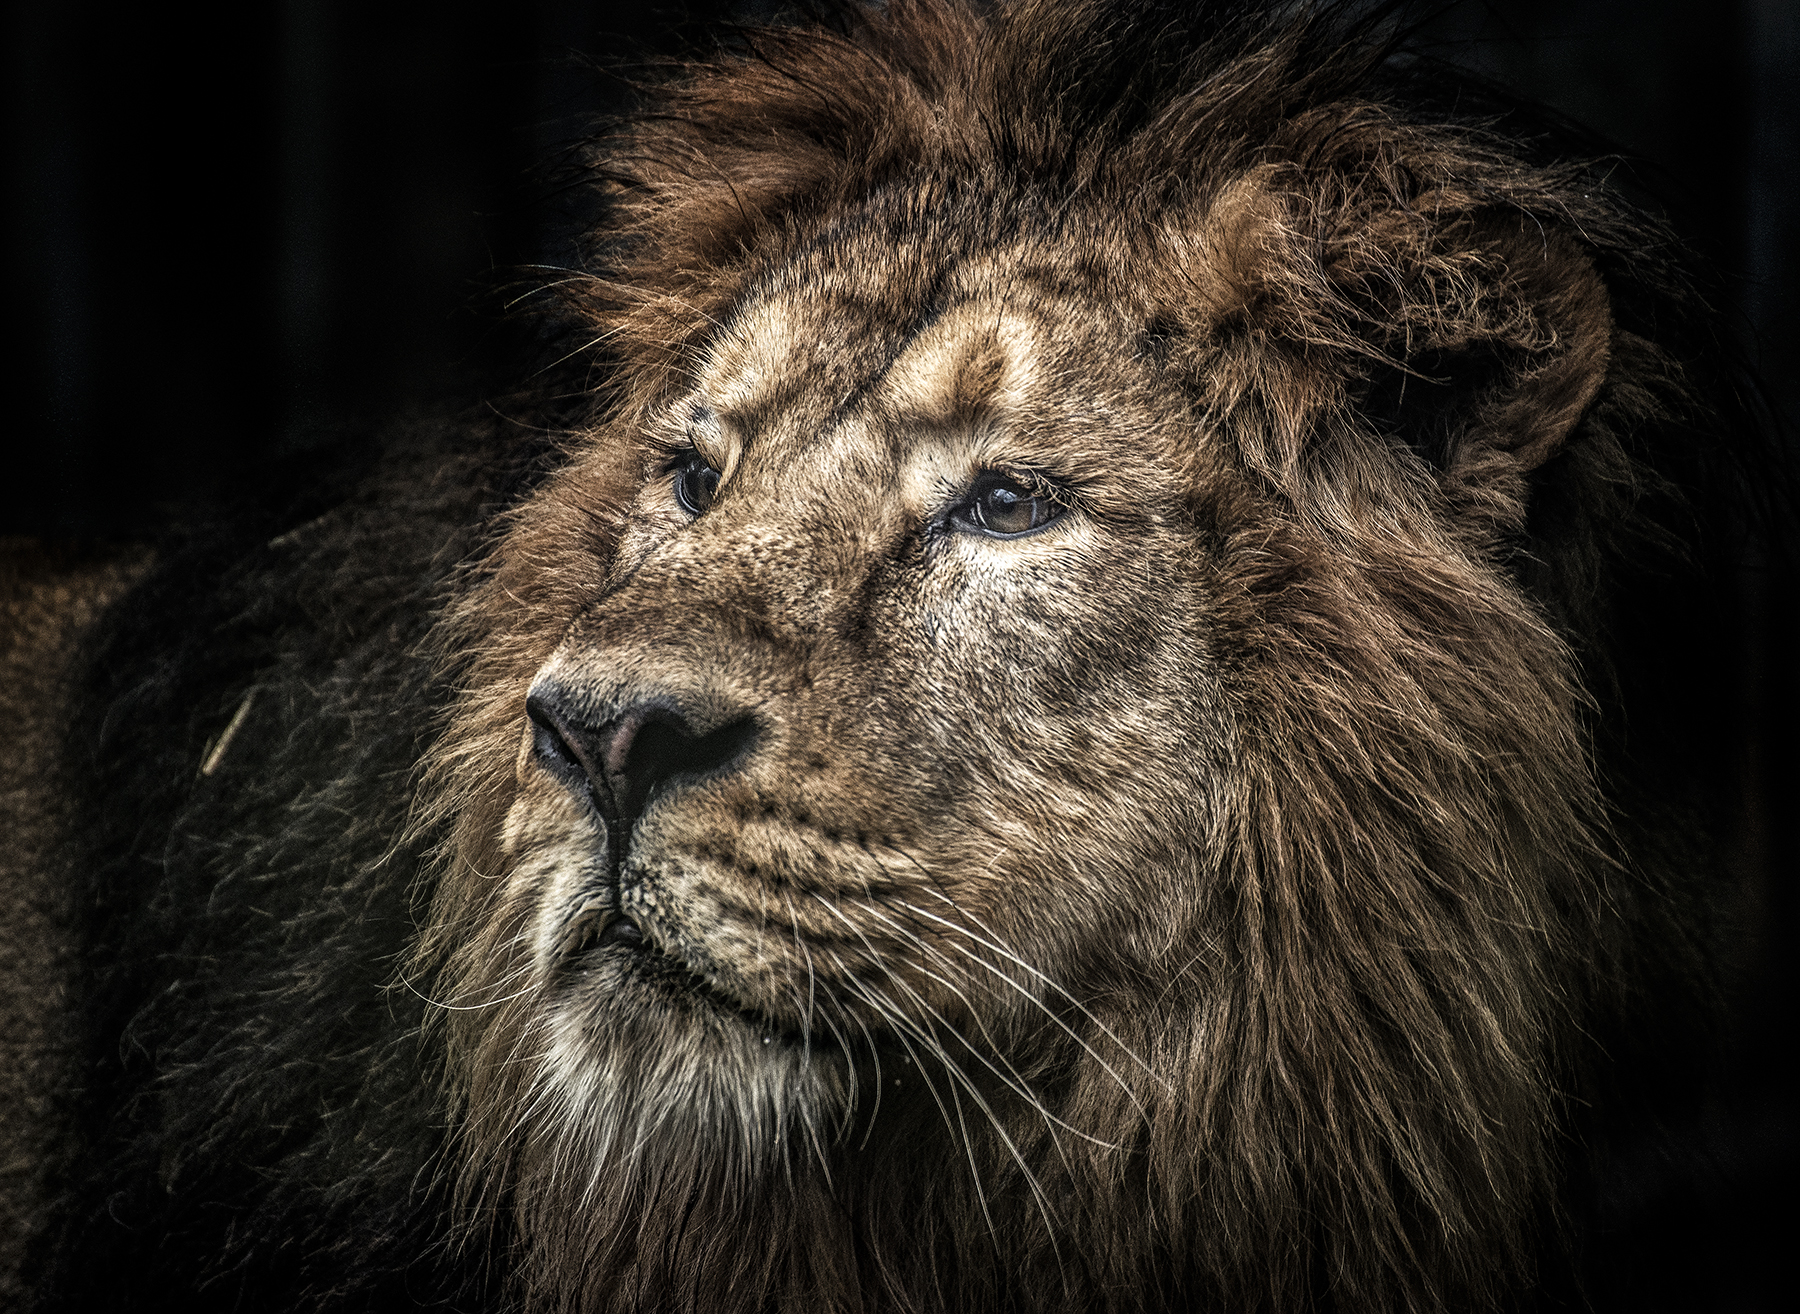 The king lion VII